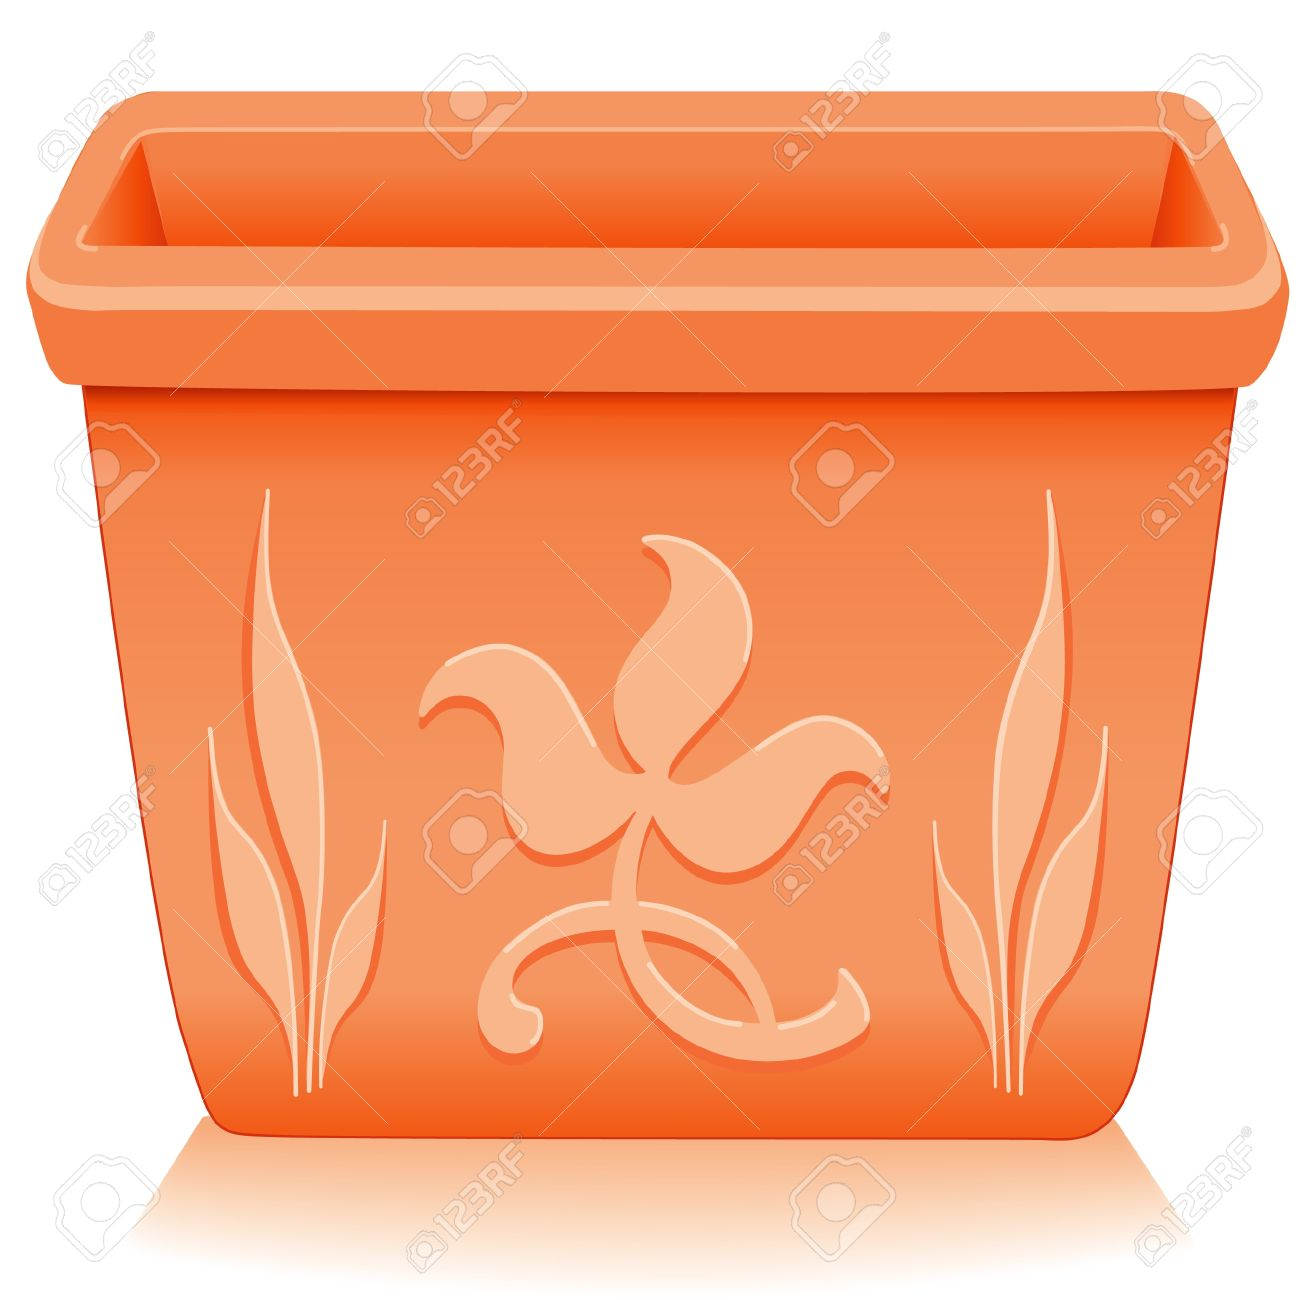 Flowerpot Planter Square Clay Pottery With Embossed Floral Designs.